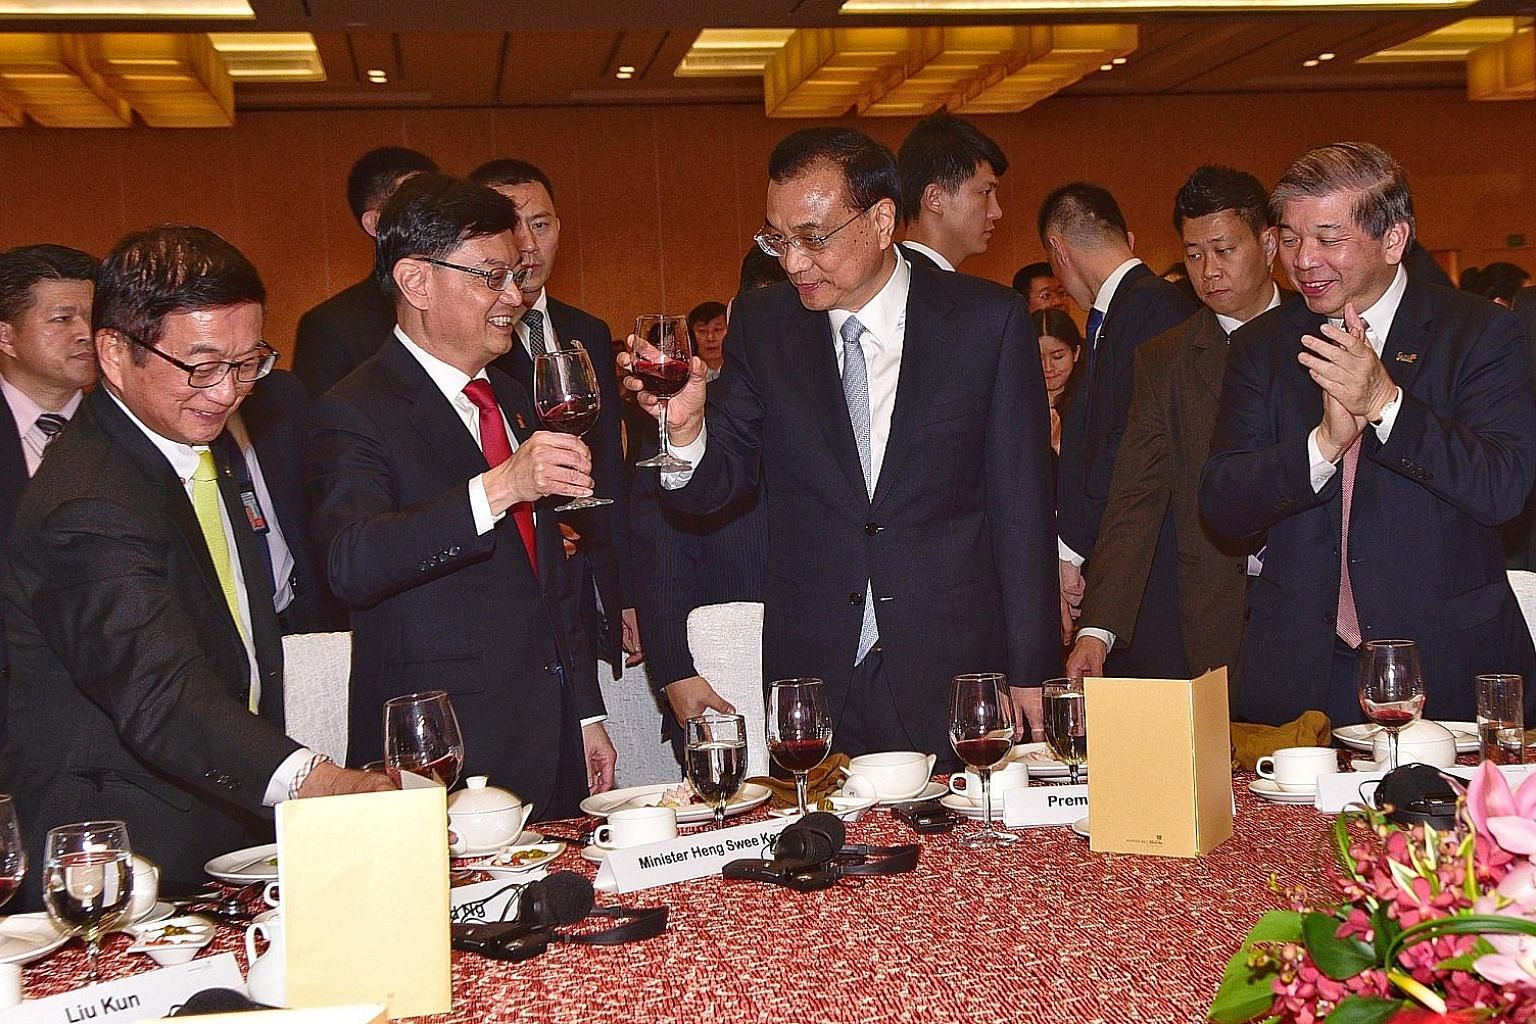 Visiting Chinese Premier Li Keqiang exchanging a toast with Finance Minister Heng Swee Keat at a welcome dinner yesterday hosted by the Singapore Chinese Chamber of Commerce and Industry (SCCCI) and Singapore Business Federation (SBF). With them are